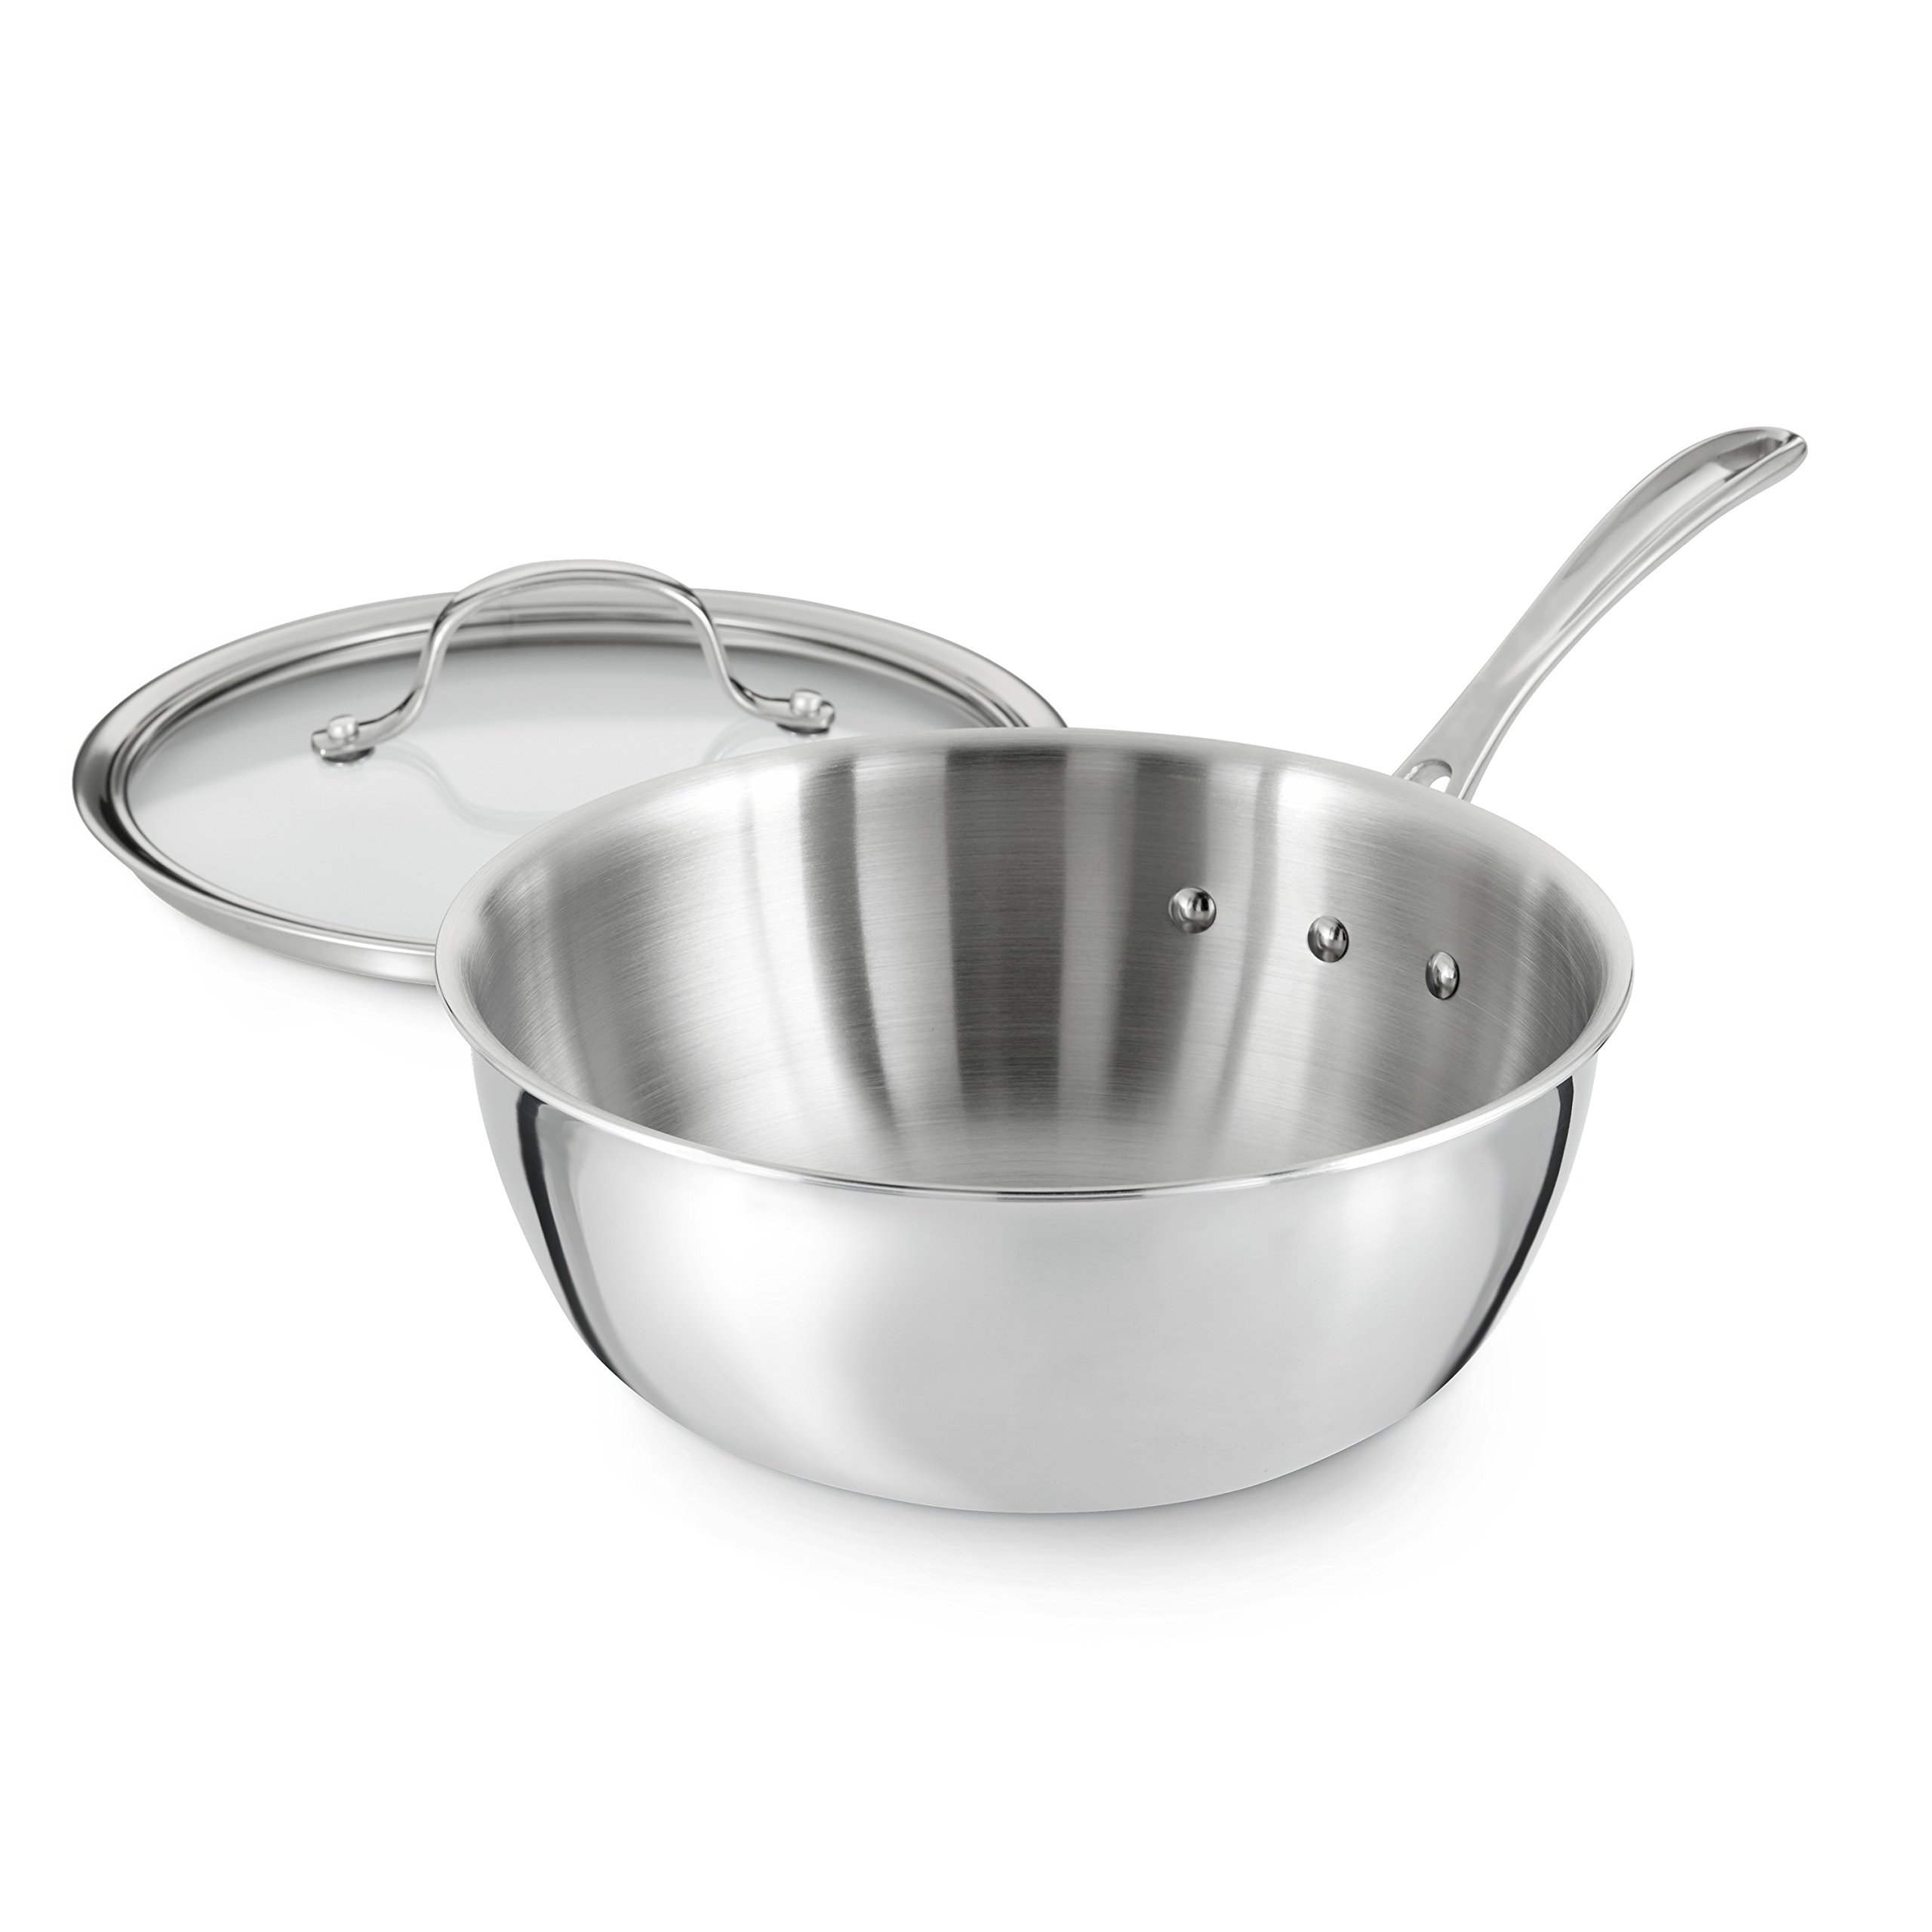 Calphalon Tri-Ply Stainless Steel Cookware, Chef's Pan, 3-quart by Calphalon (Image #3)